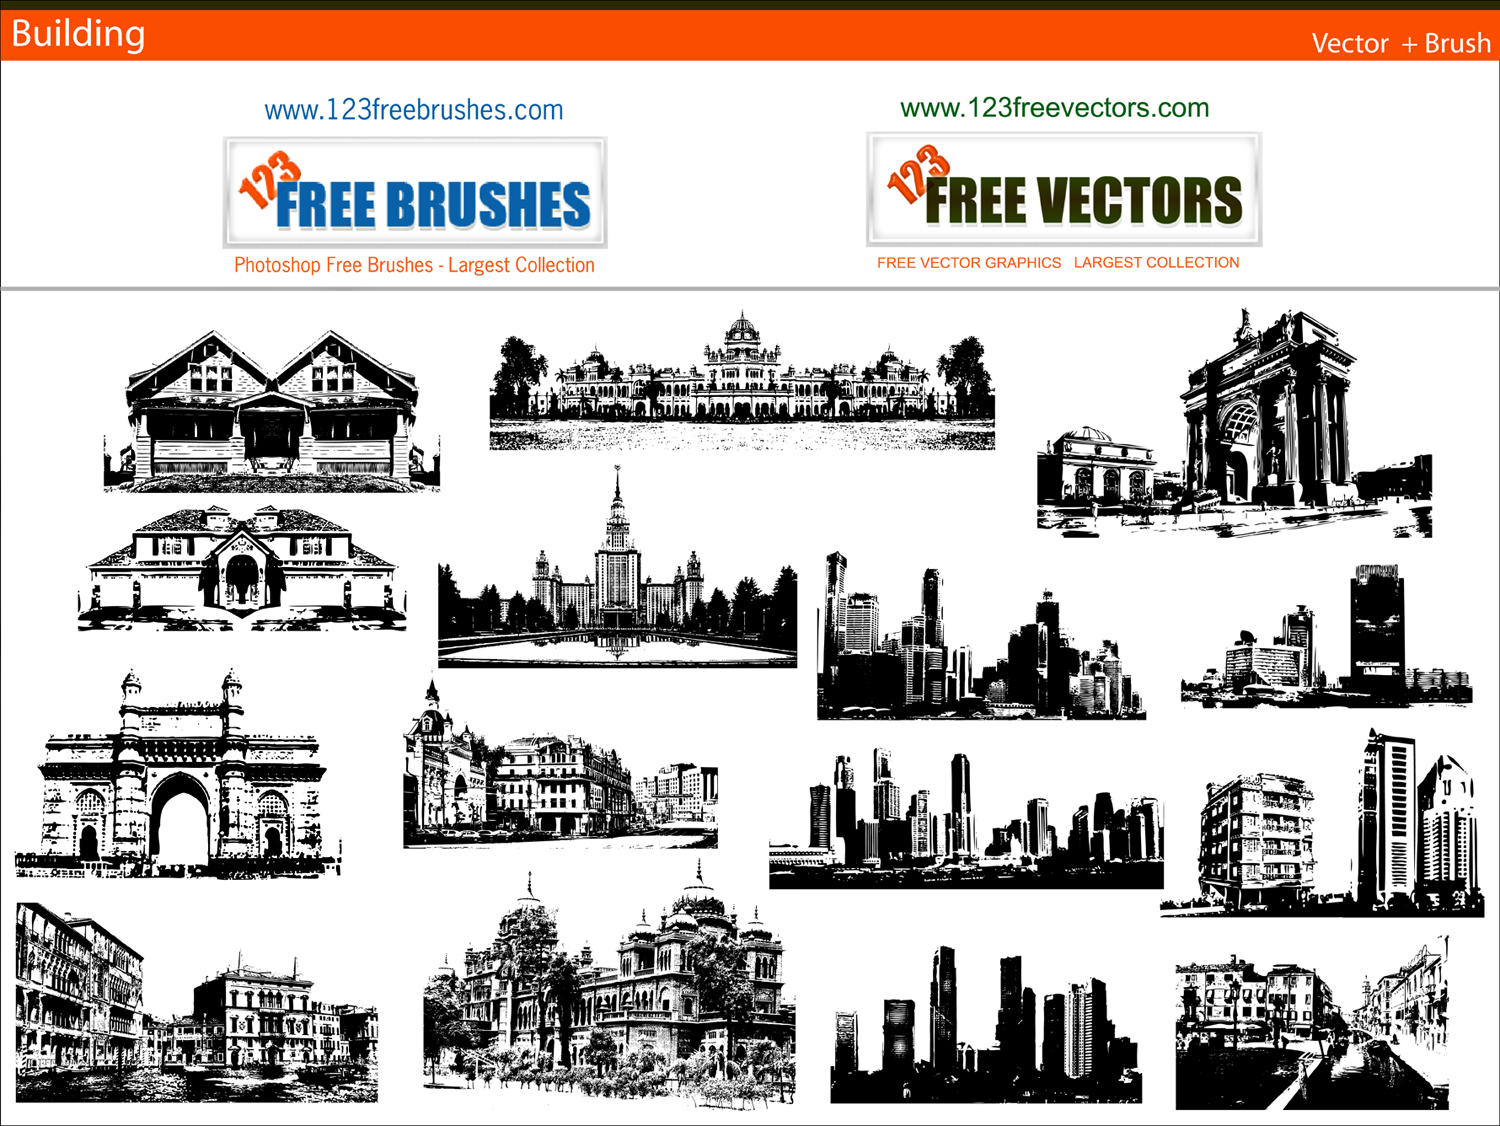 15 City Building Vector Free Download Images